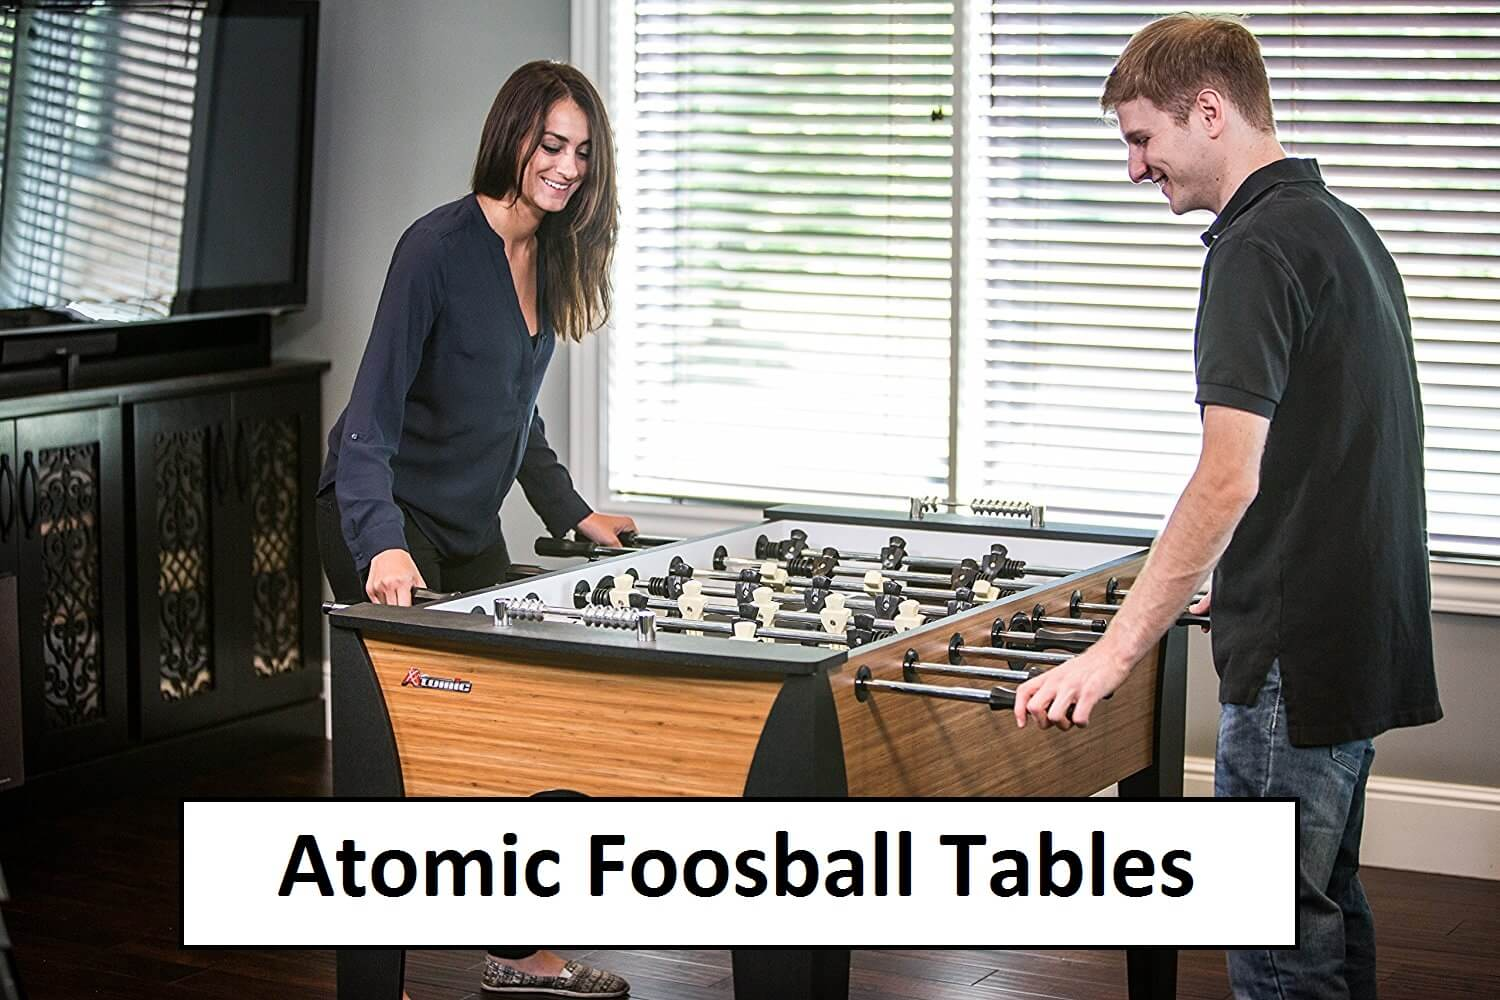 Atomic foosball tables